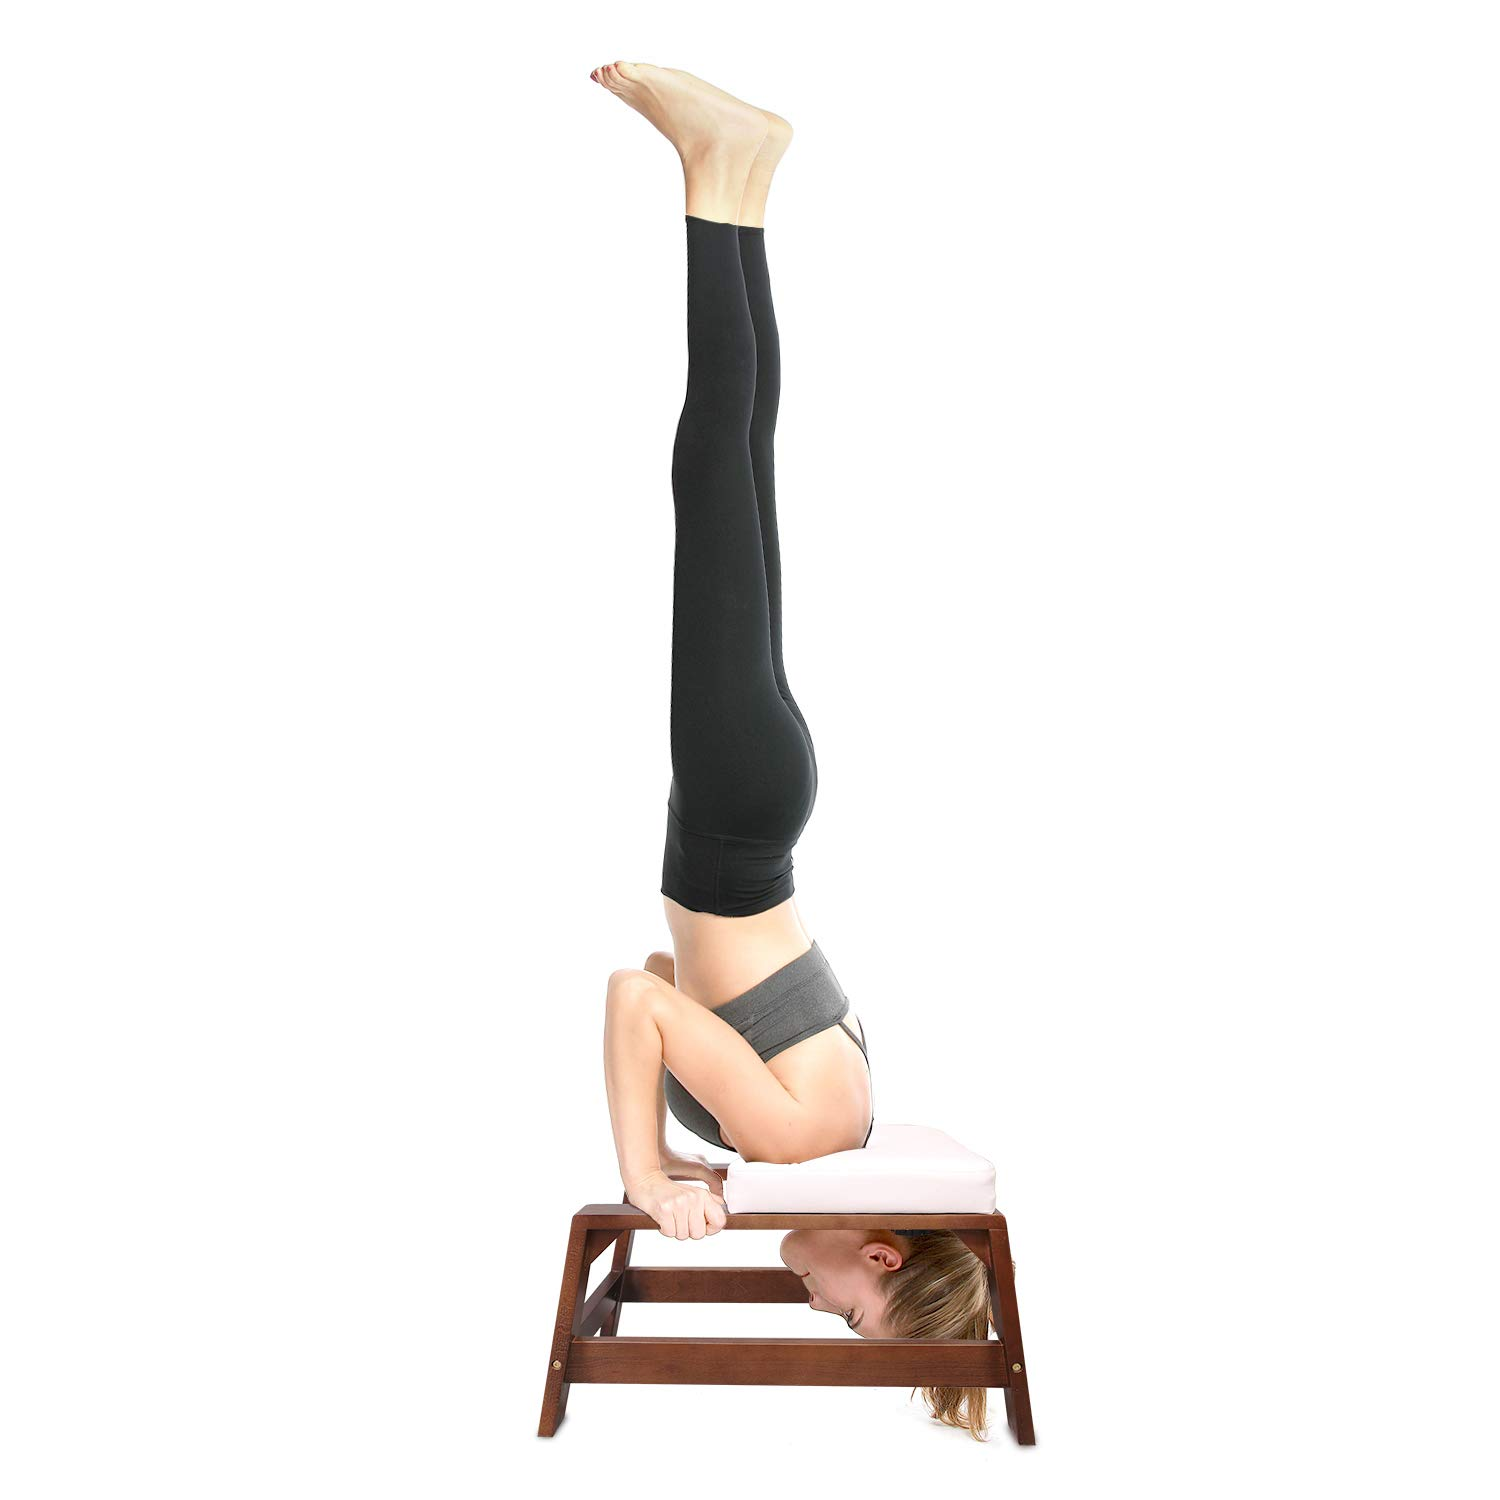 100/% Beech and PU Pads Restrial Life Yoga Headstand Bench Gym Relieve Fatigue and Build Up Body Yoga Inversion Trainer for Family